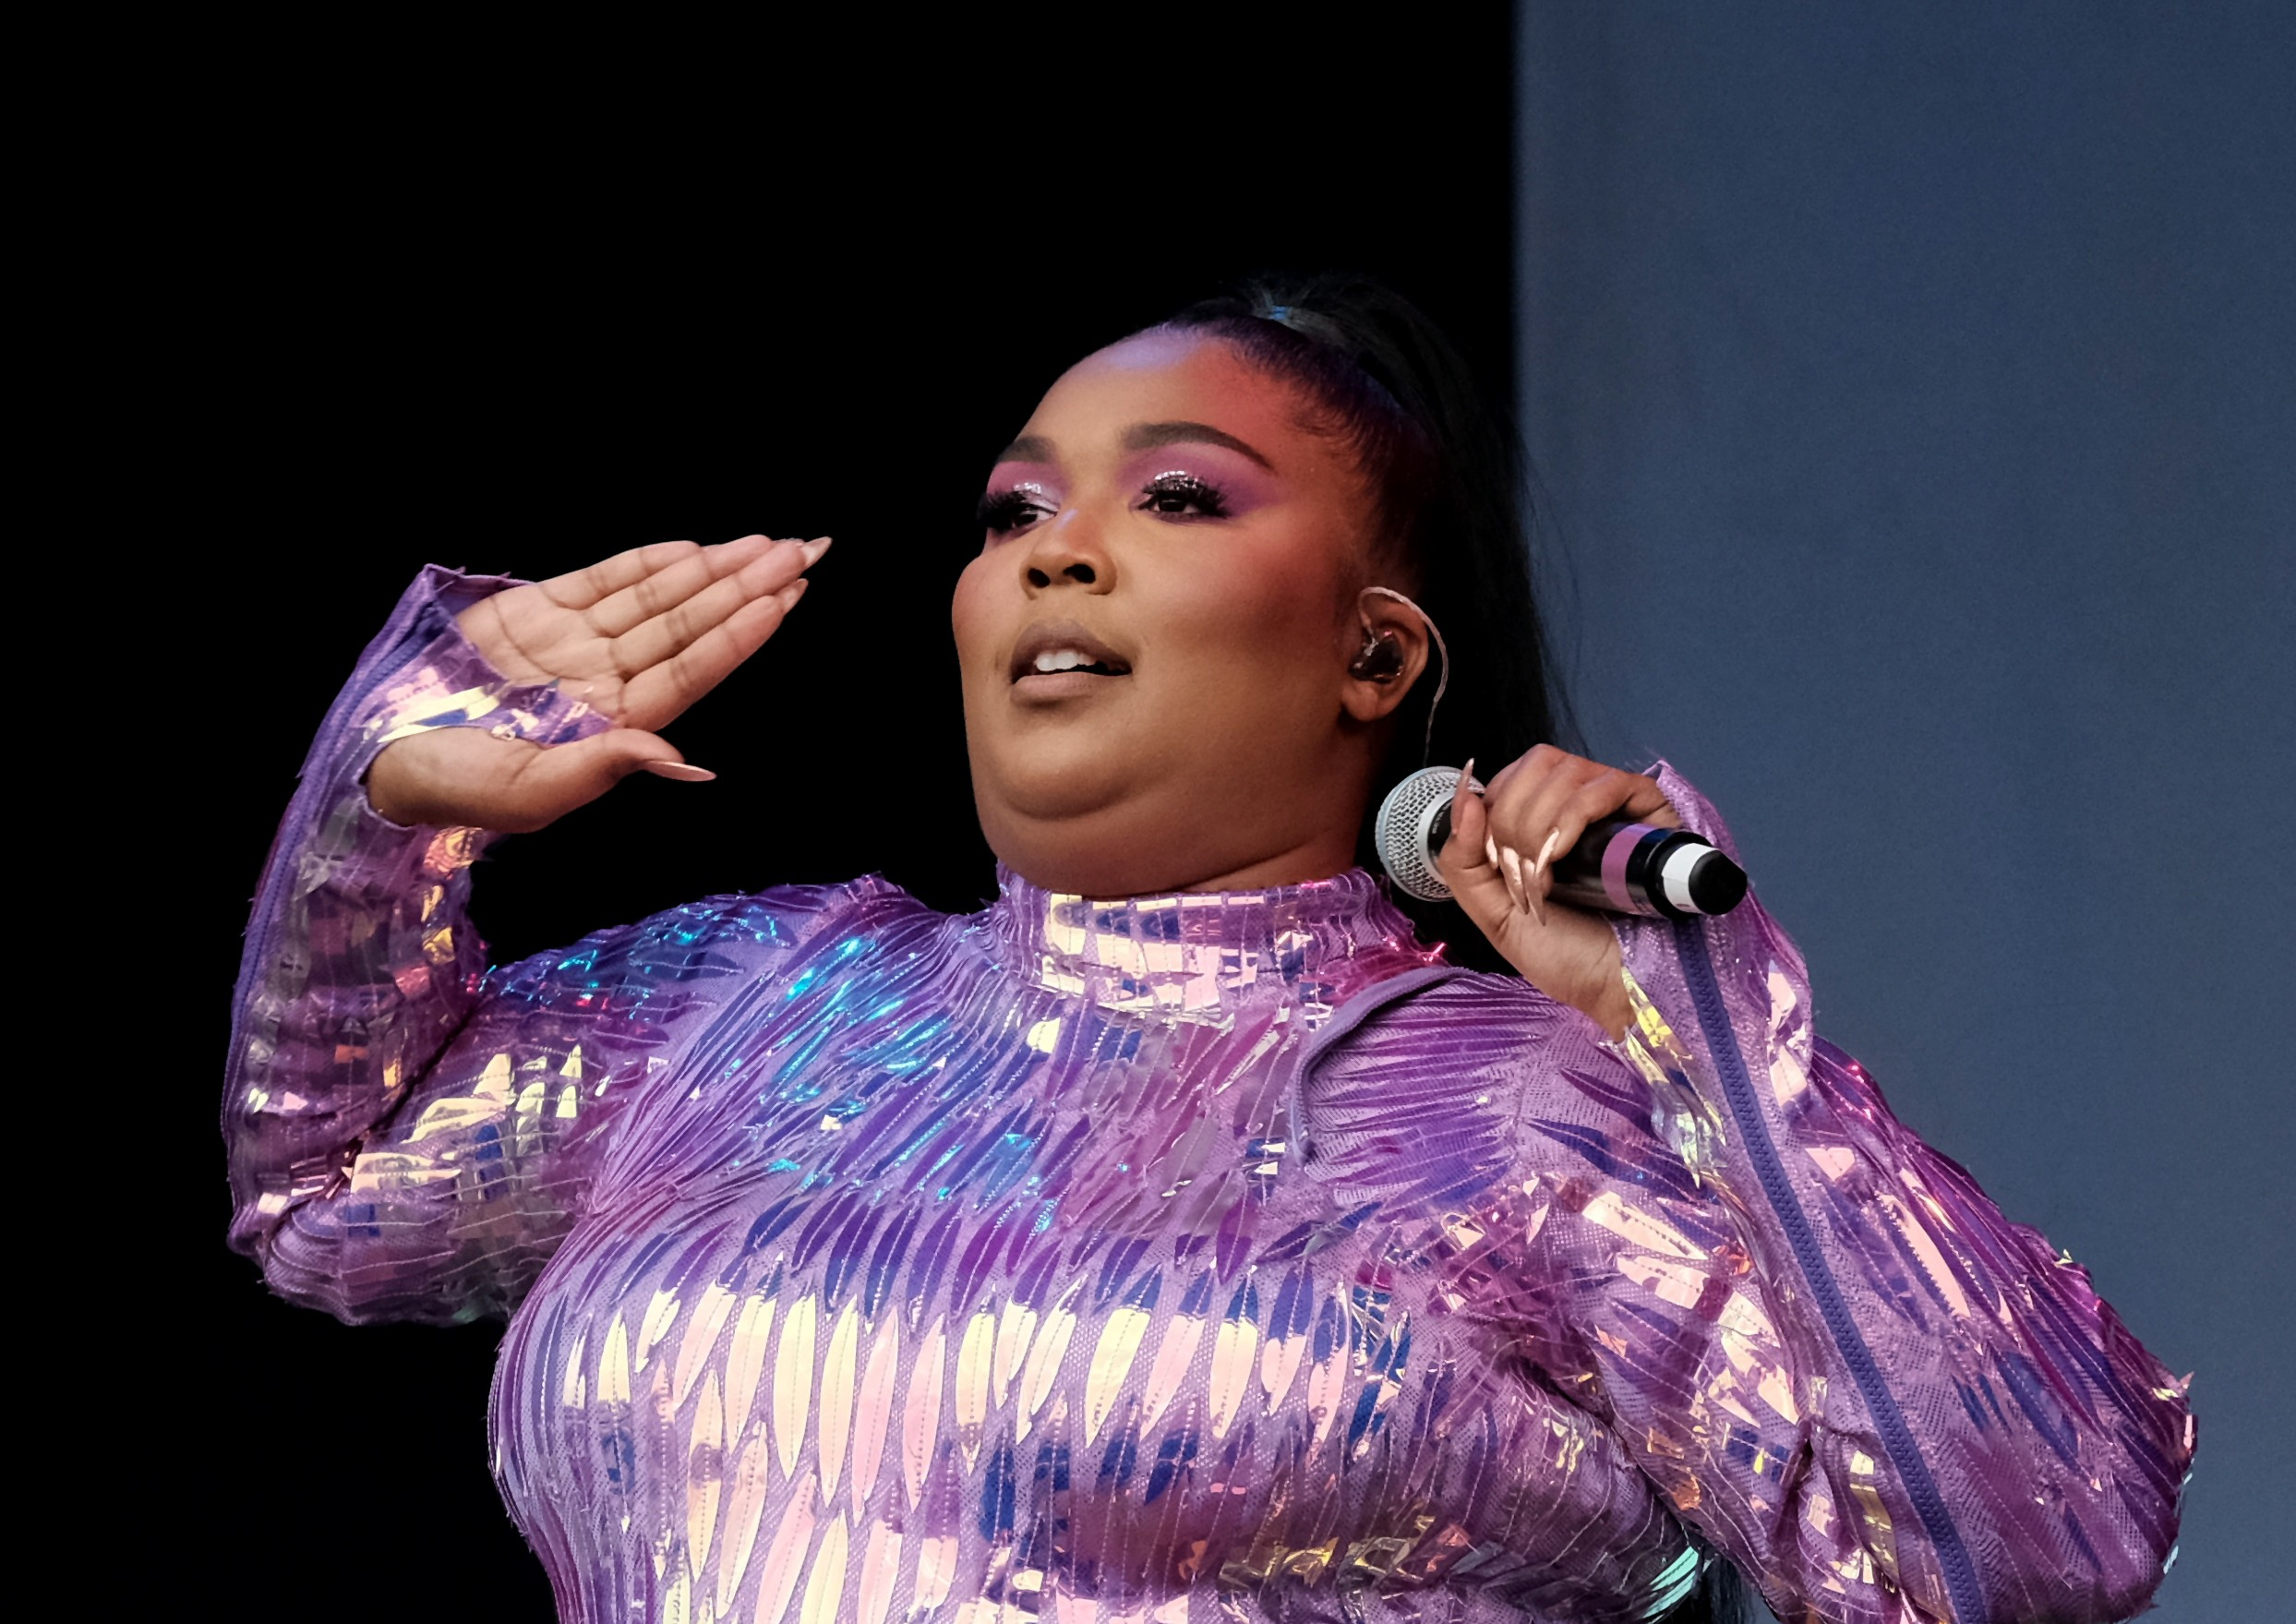 EXCLUSIVE: Lizzo Wants Postmates Driver To Pay Her Legal Bill